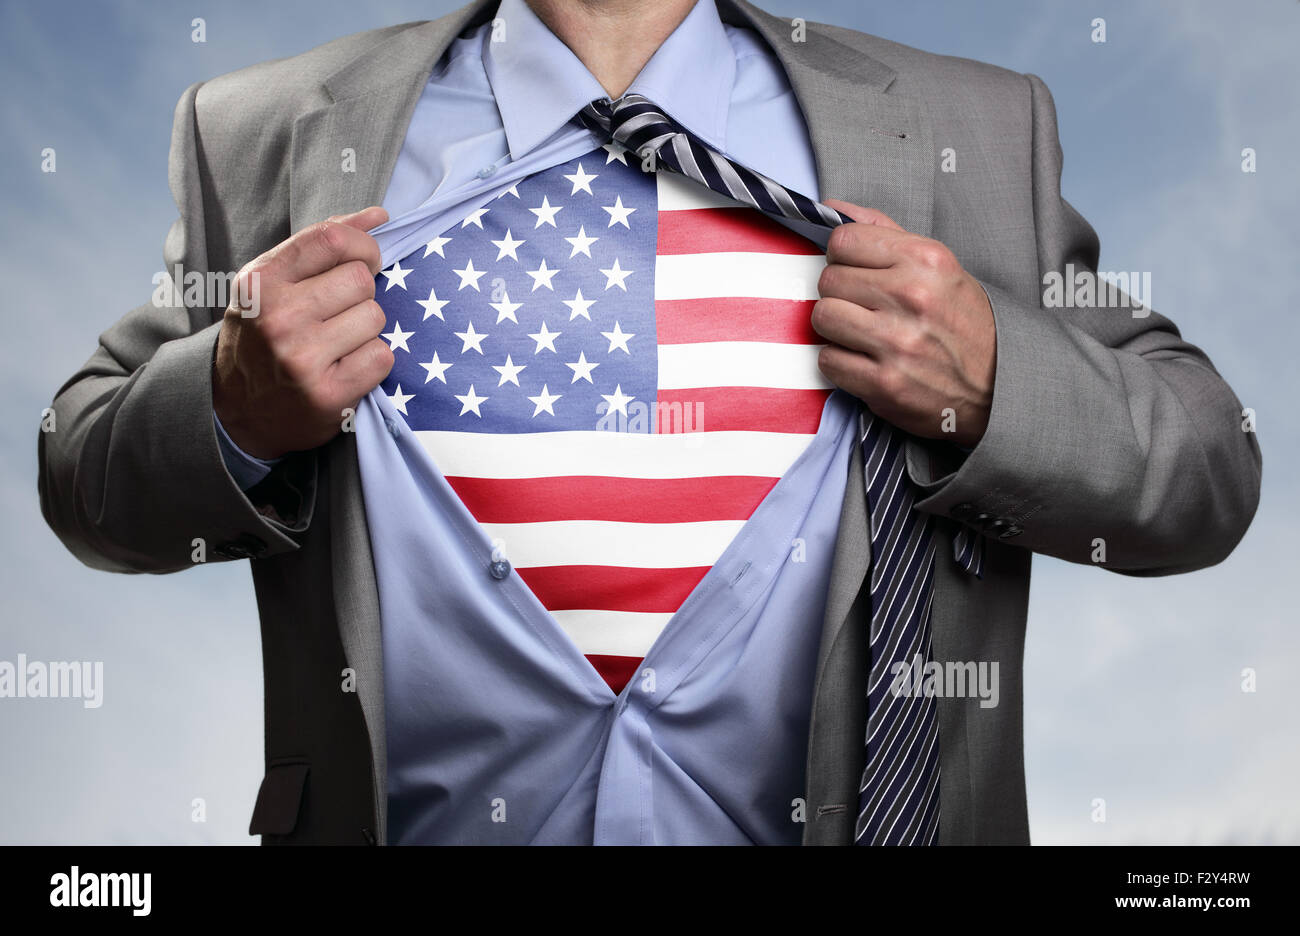 Superhero businessman revealing American flag - Stock Image